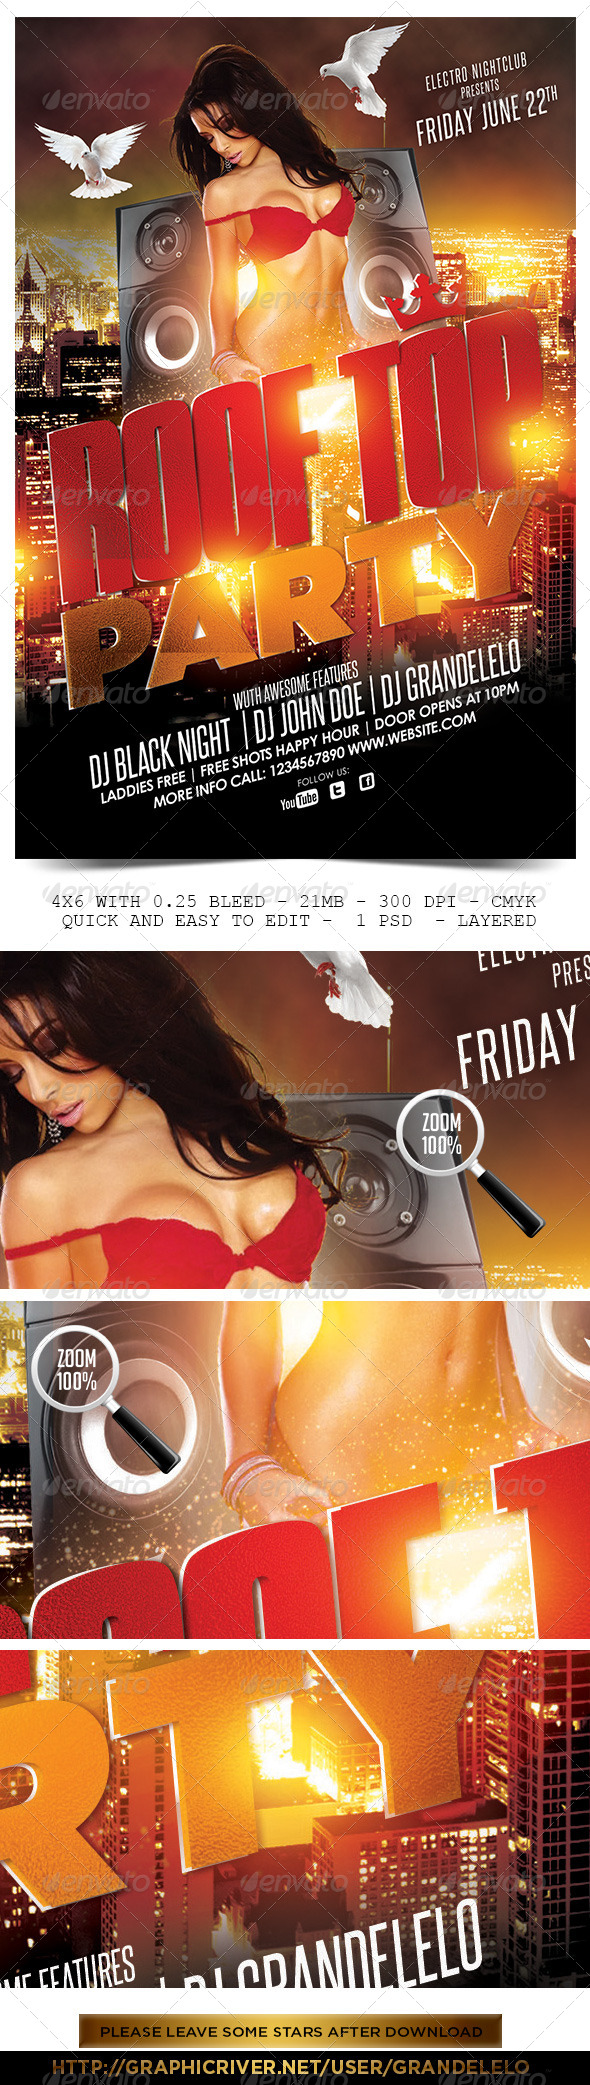 GraphicRiver Roof Top Party Flyer 5378893